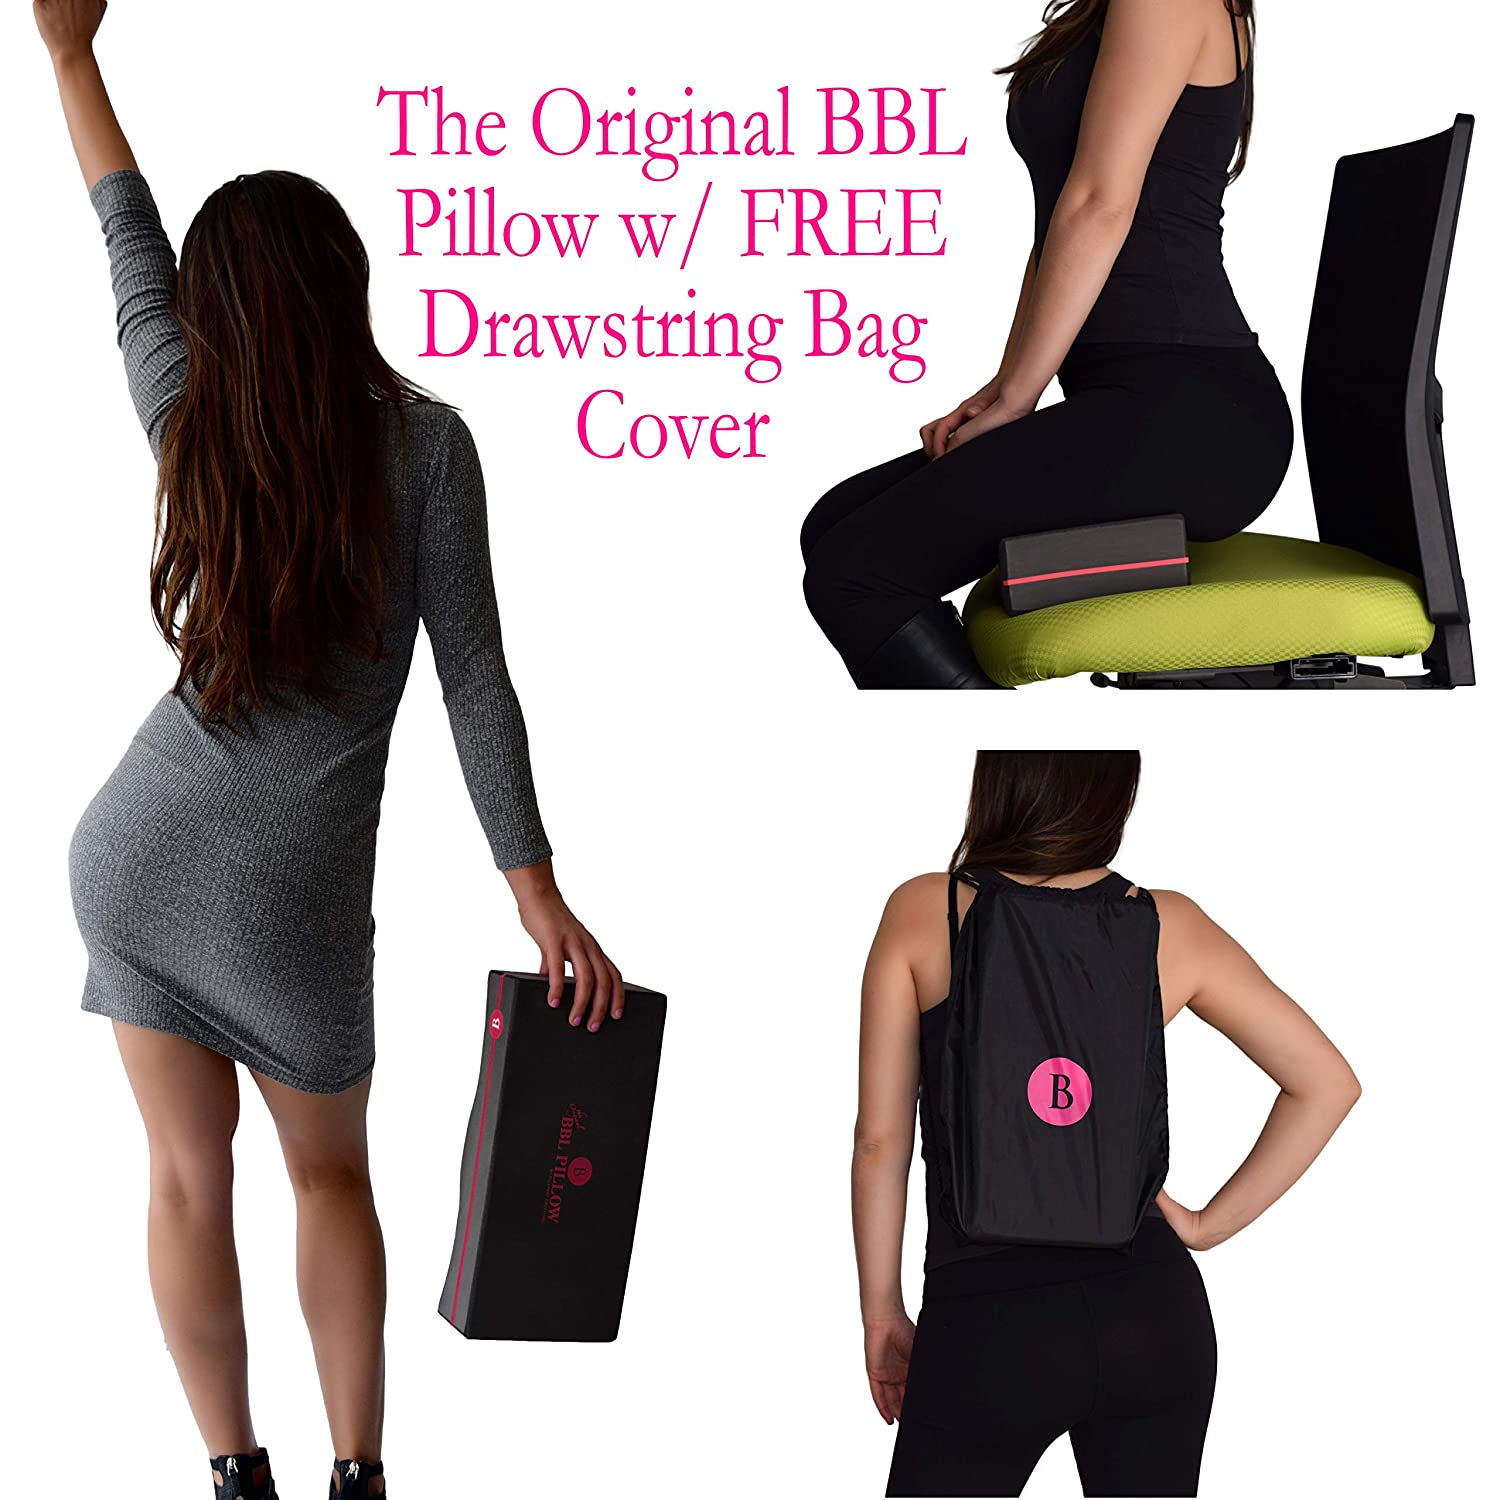 BBL Pillow ⭐️⭐️⭐️⭐️⭐️ The Original Brazilian Butt Lift Pillow - Dr   Approved for Post Surgery Recovery Cushion + Drawstring Cover